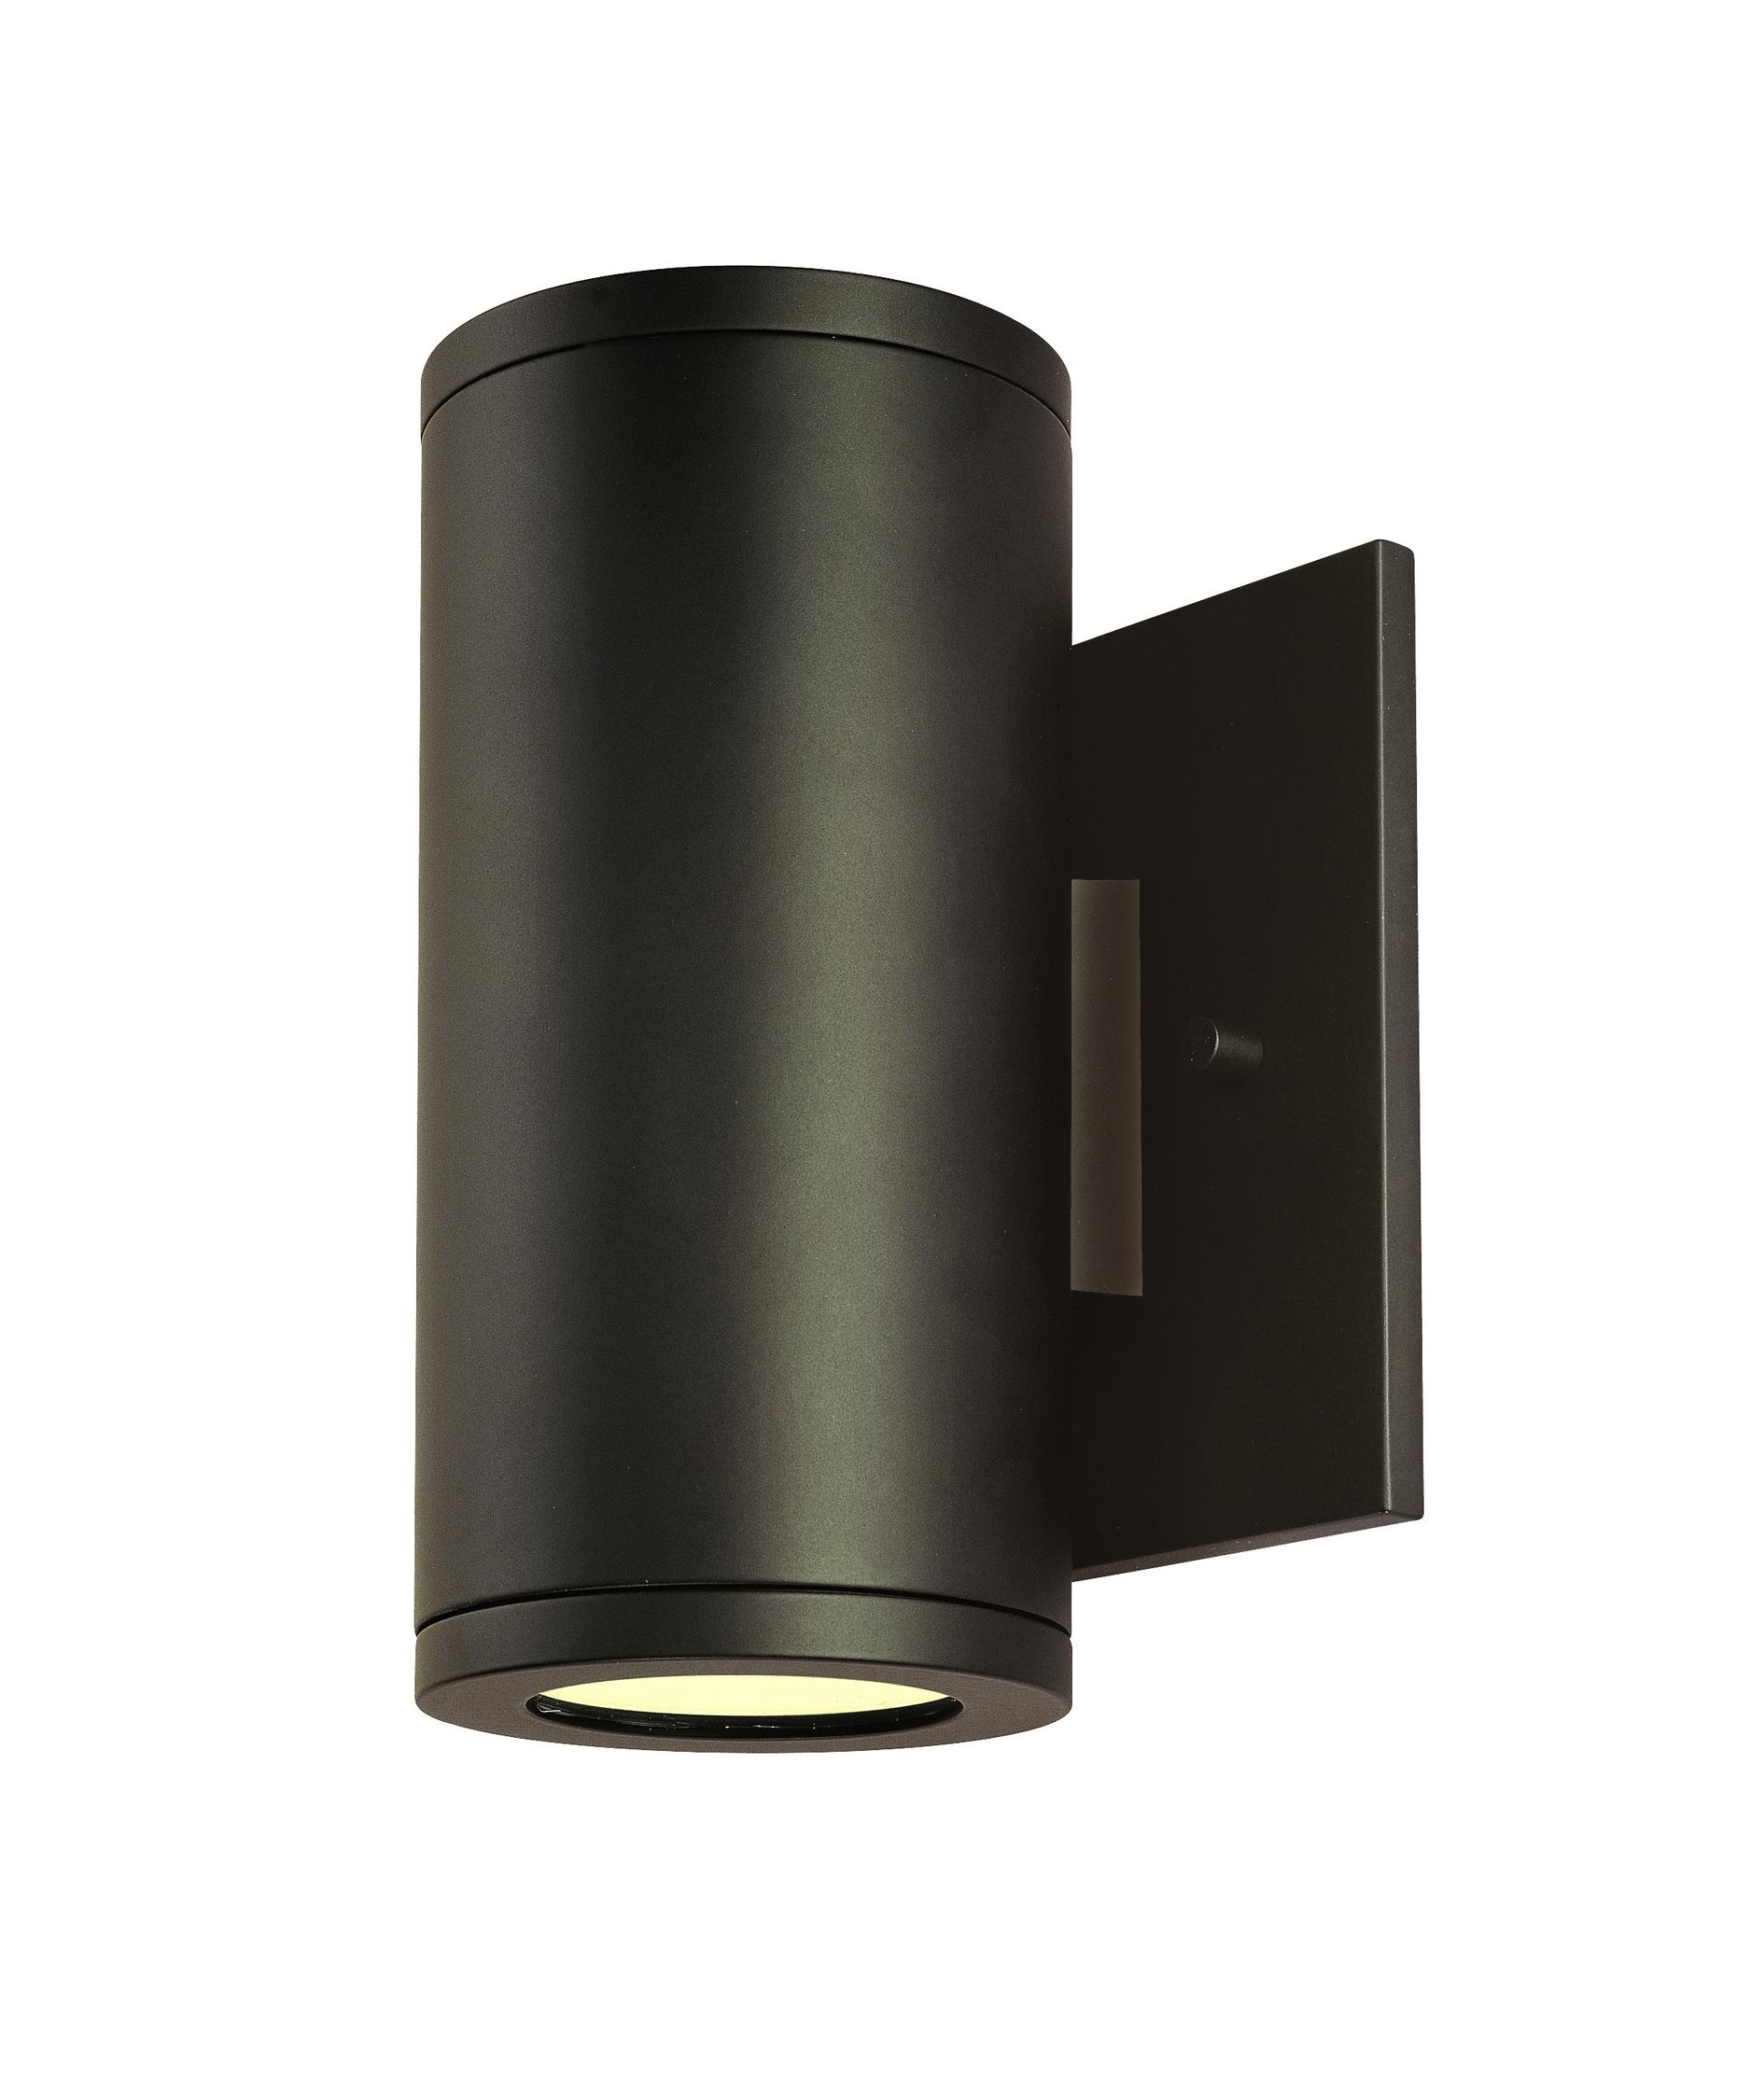 Outdoor Wall Lighting Fixtures At Amazon With Regard To Best And Newest Csl Lighting Ss1020A Silo Outdoor Wall Light (View 17 of 20)